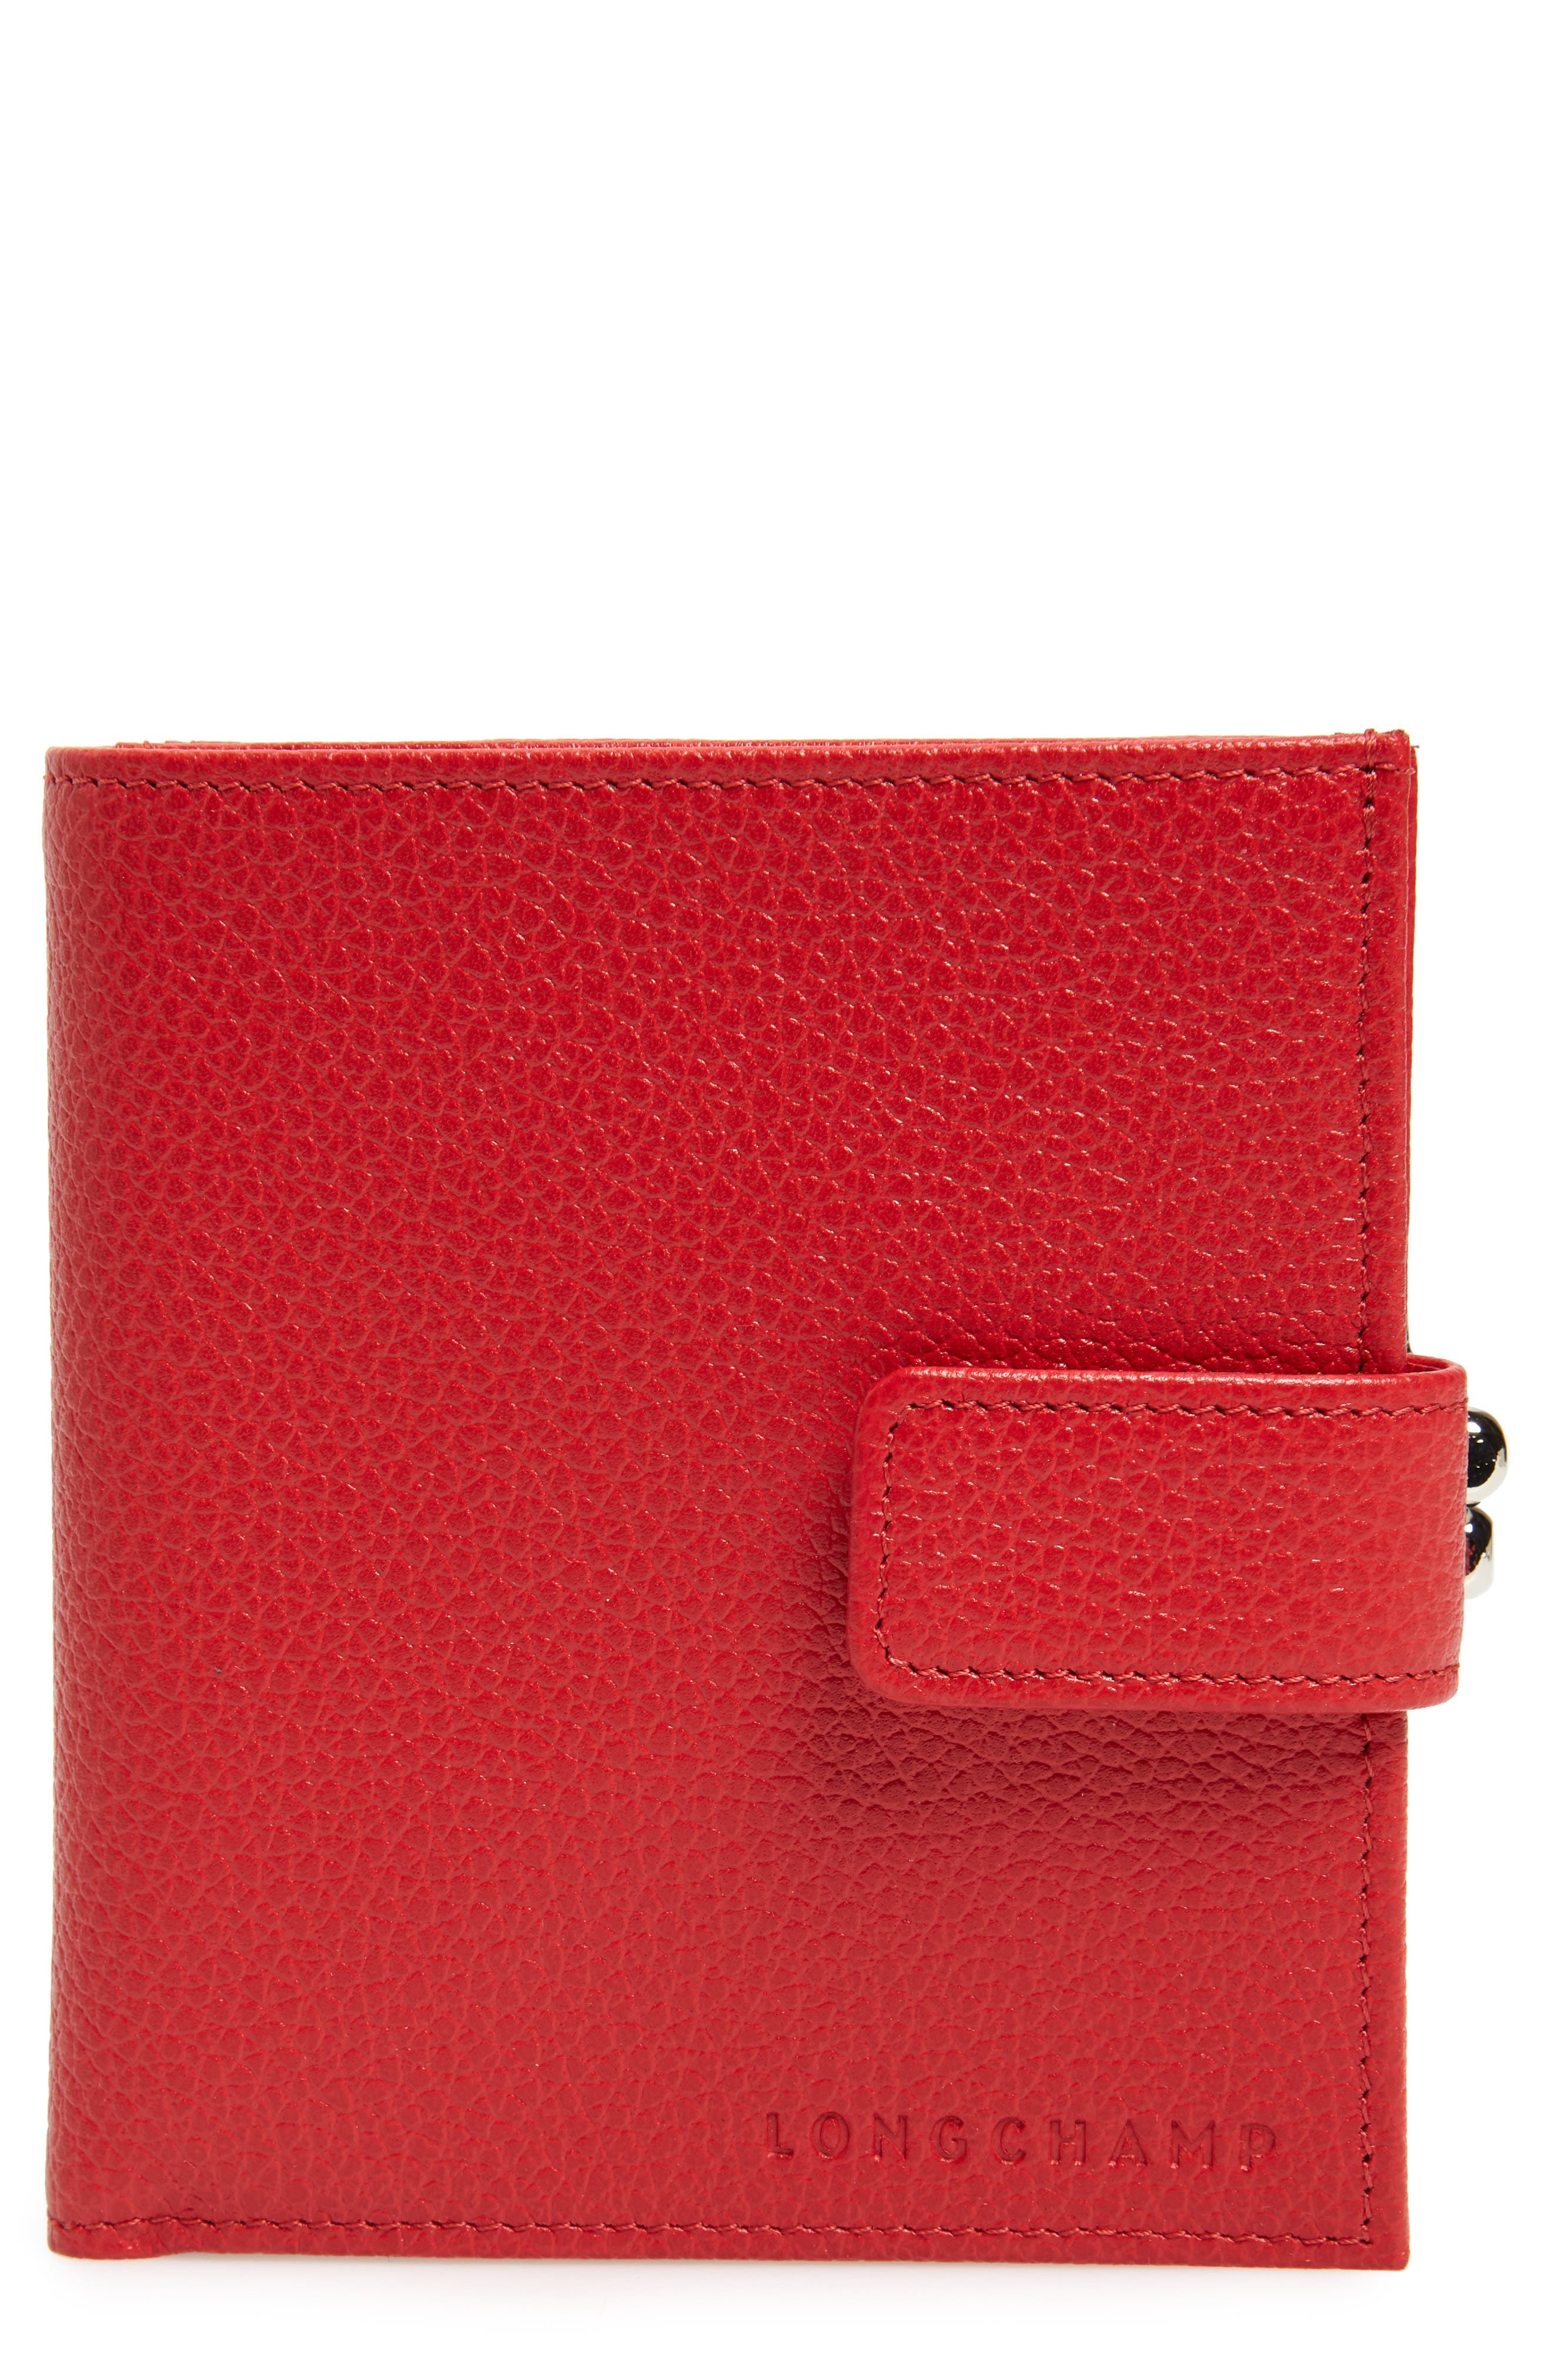 LONGCHAMP, 'Le Foulonne' Pebbled Leather Wallet, Main thumbnail 1, color, RED ORANGE